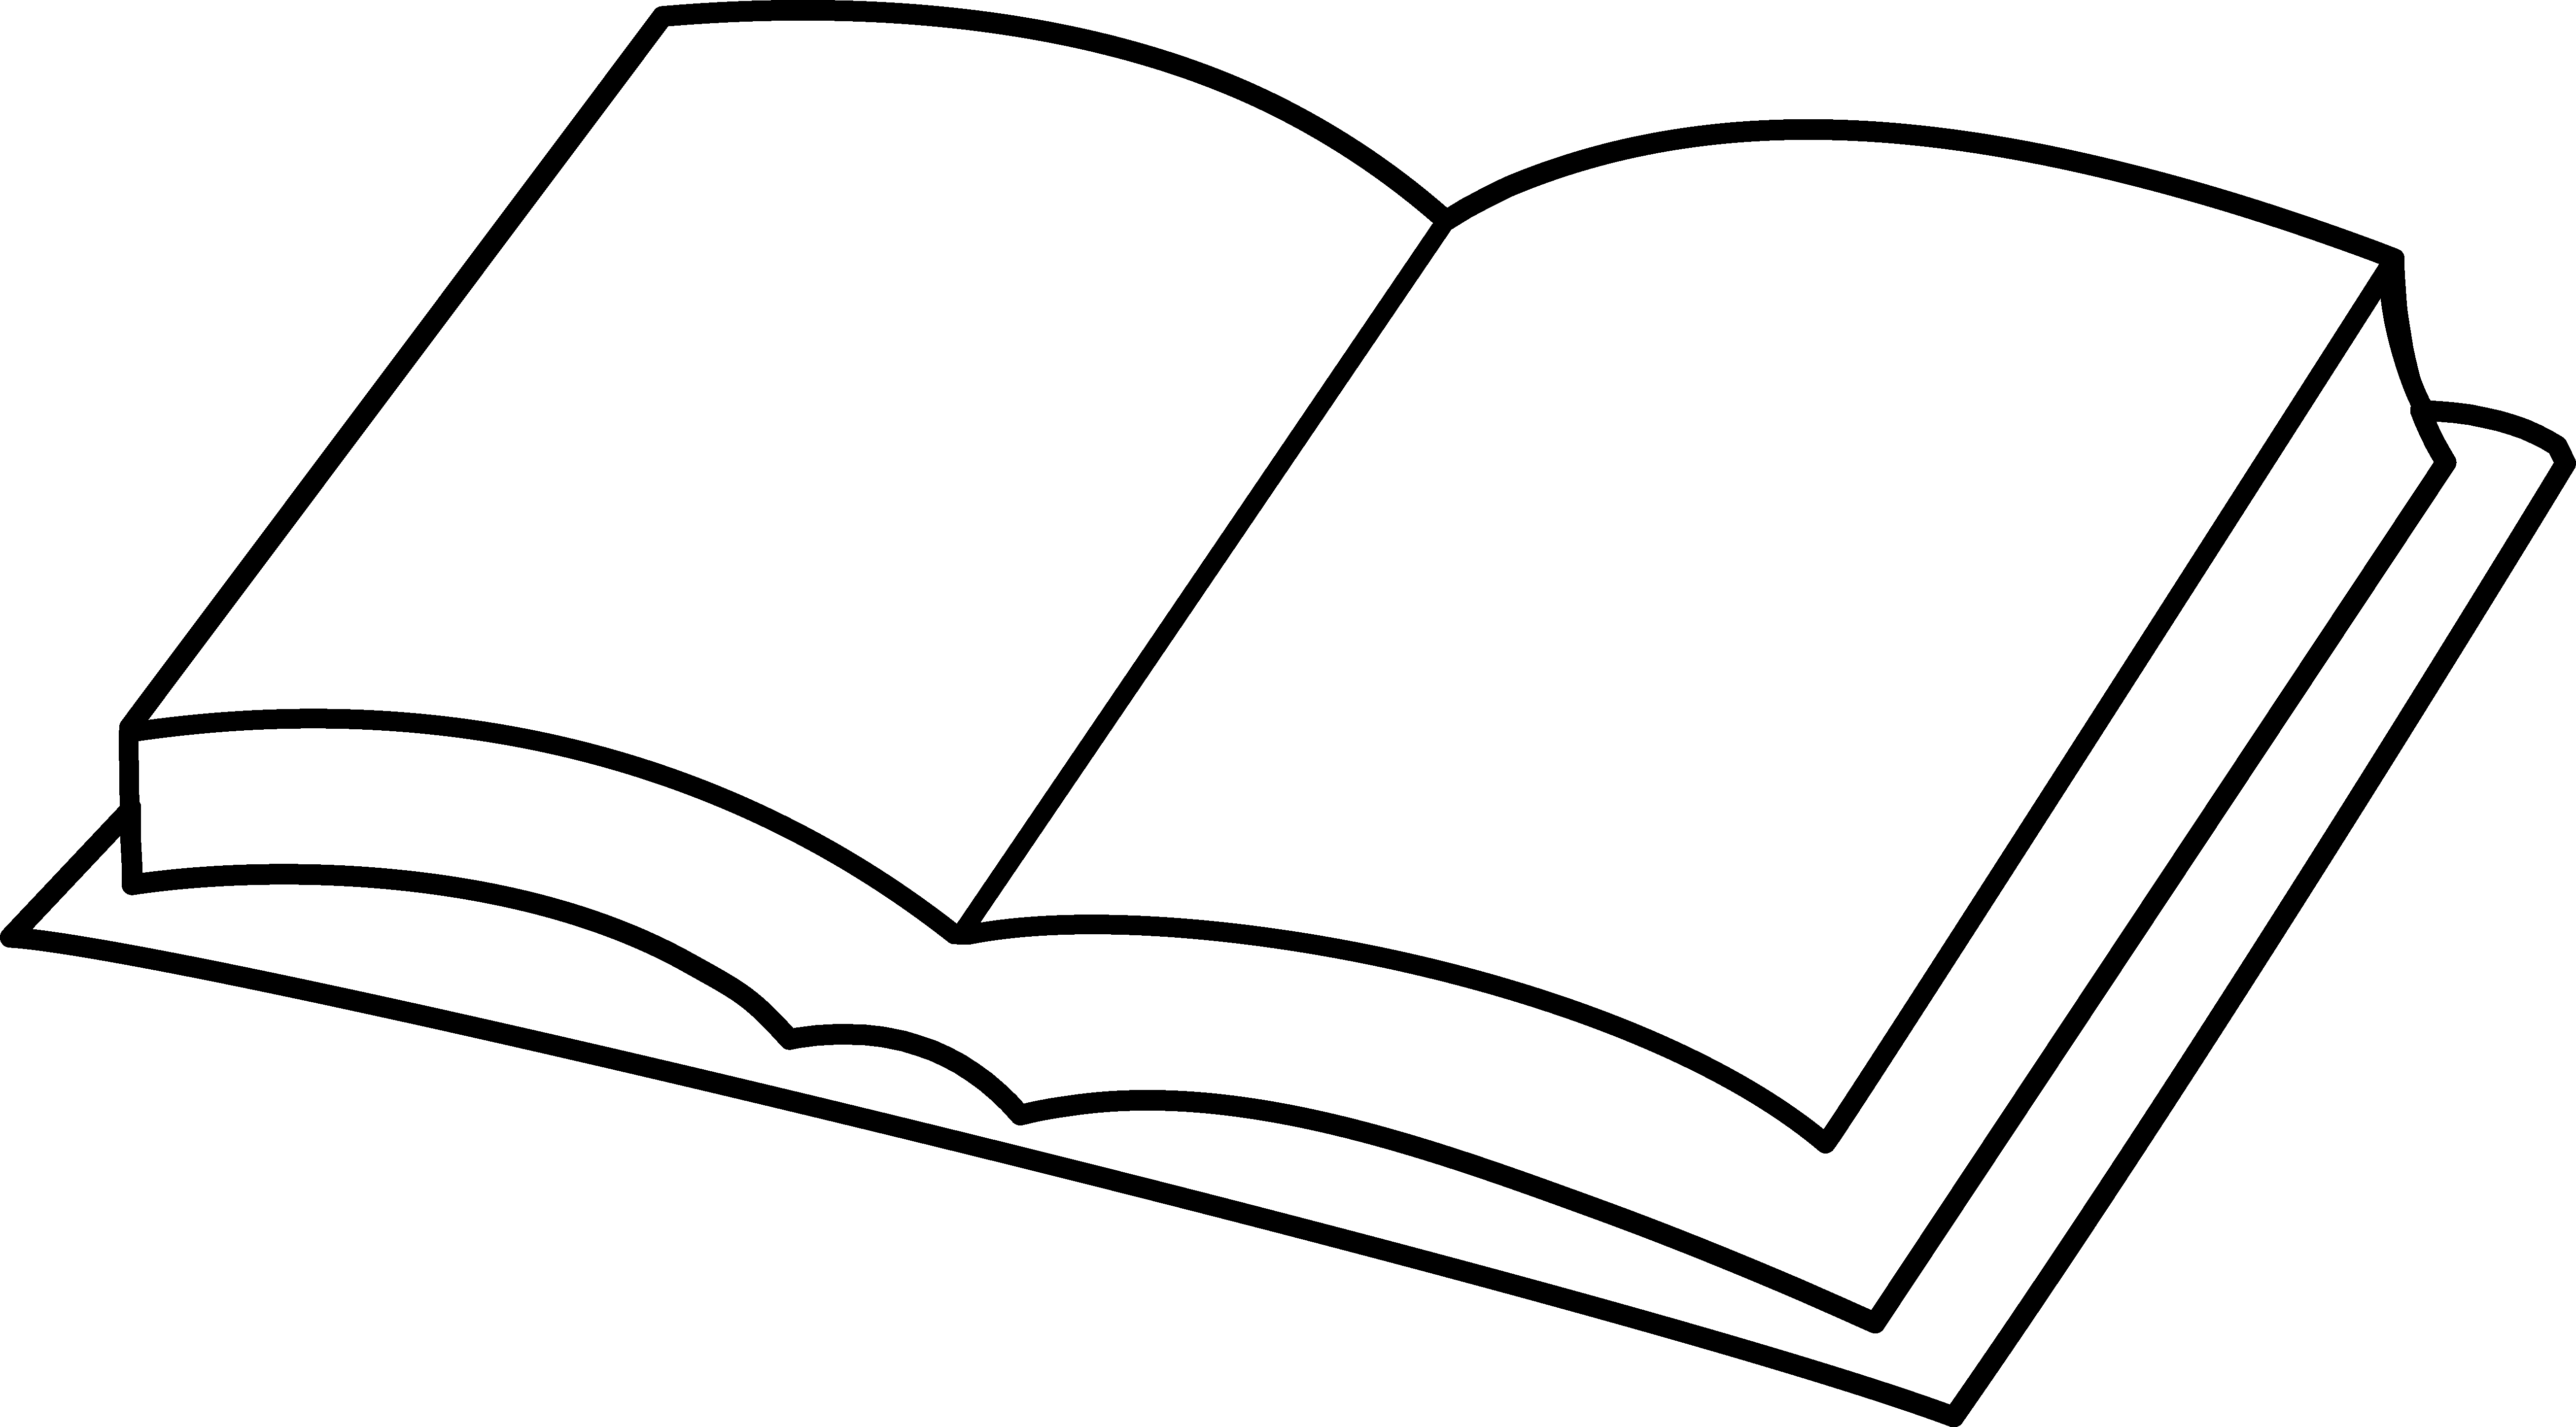 Free Blank Report Cliparts, Download Free Clip Art, Free